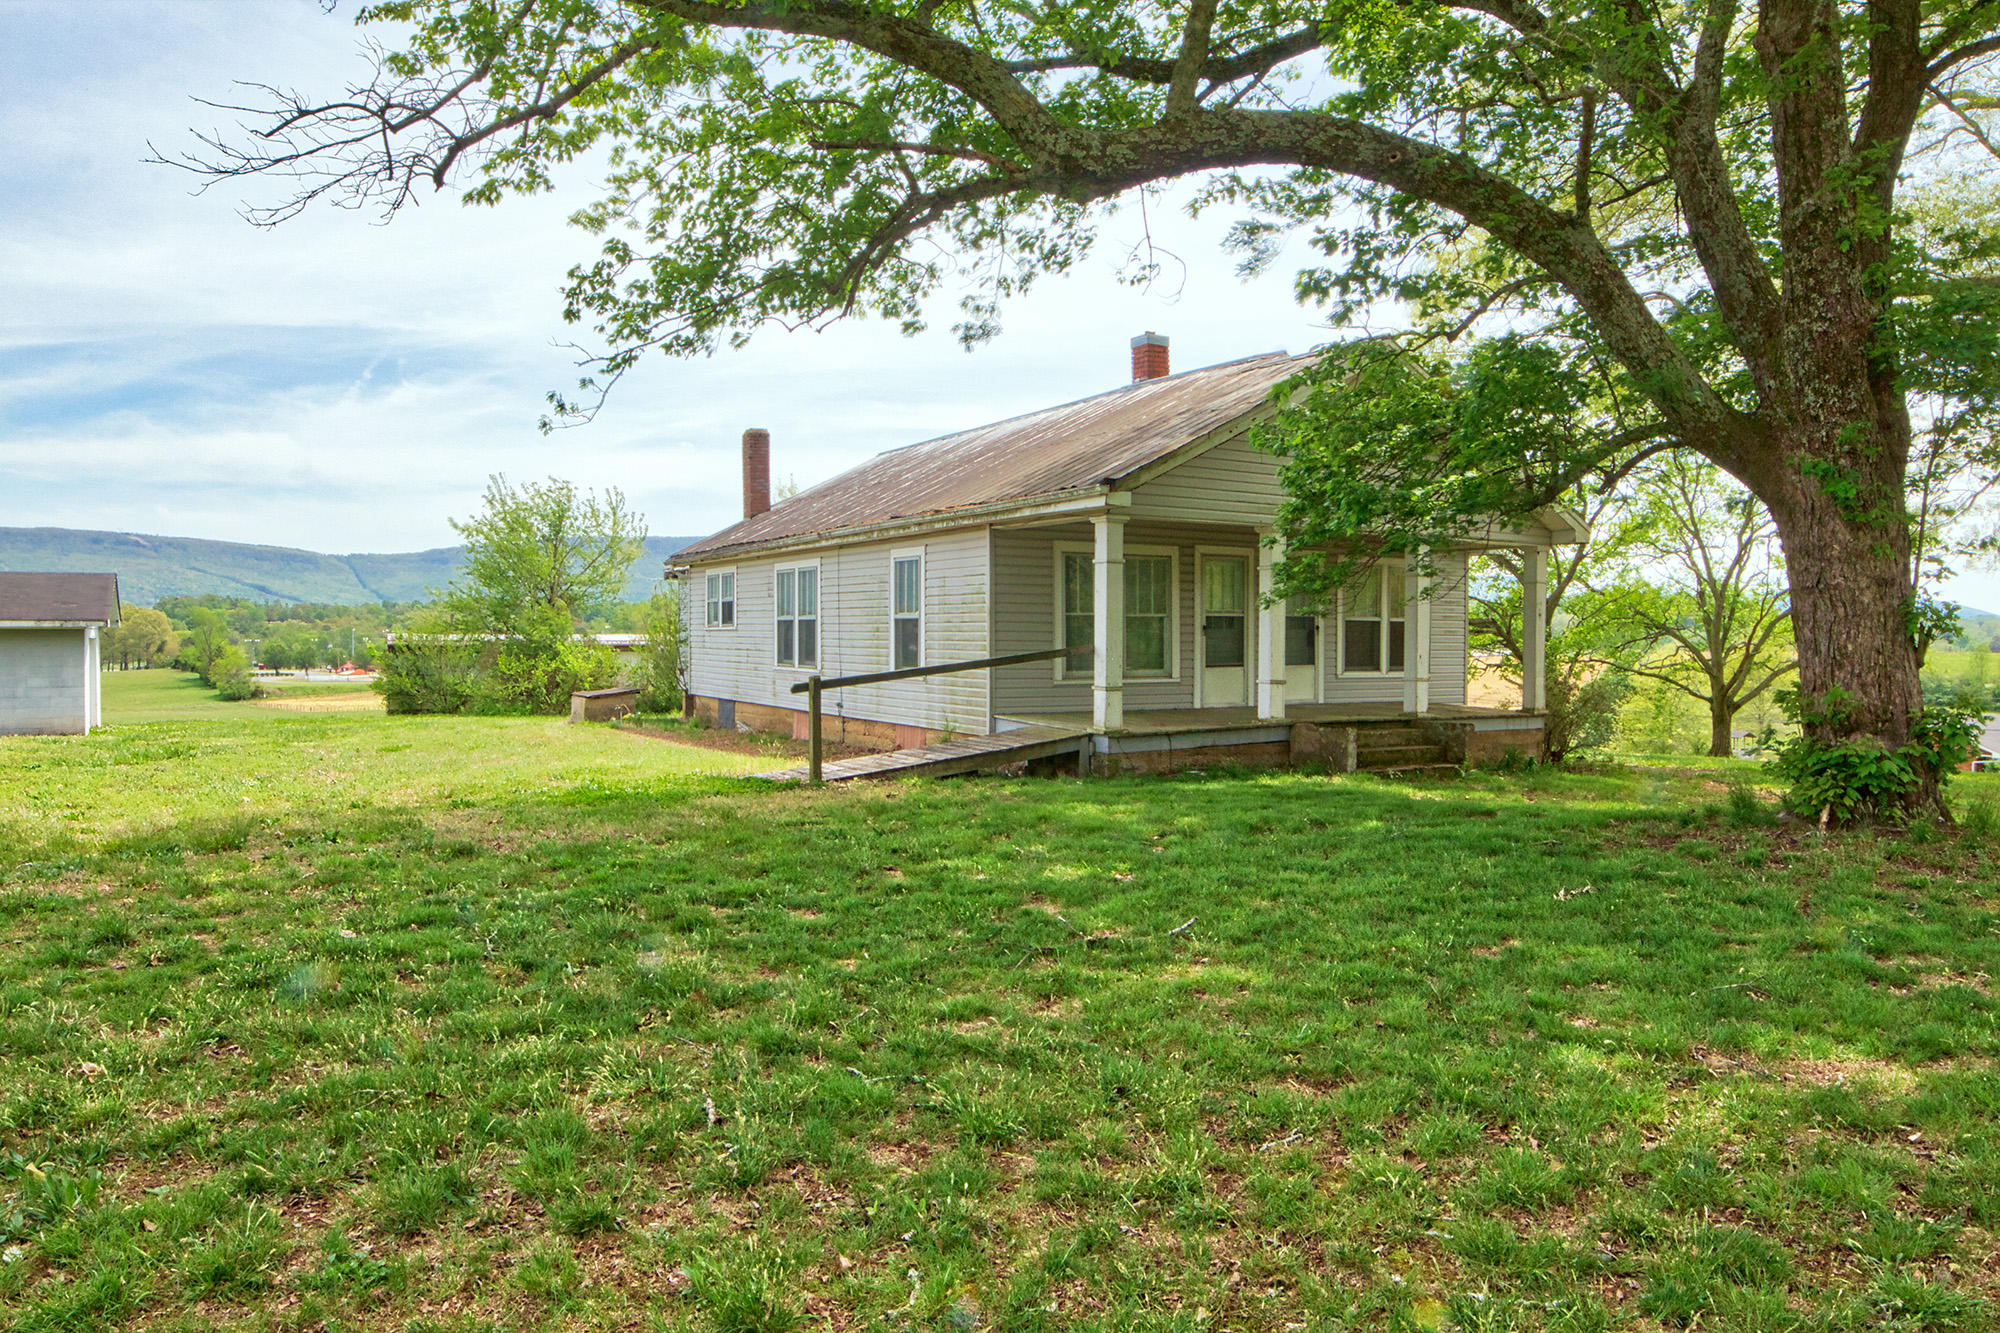 2078 Old Dunlap Rd, Whitwell, TN 37397